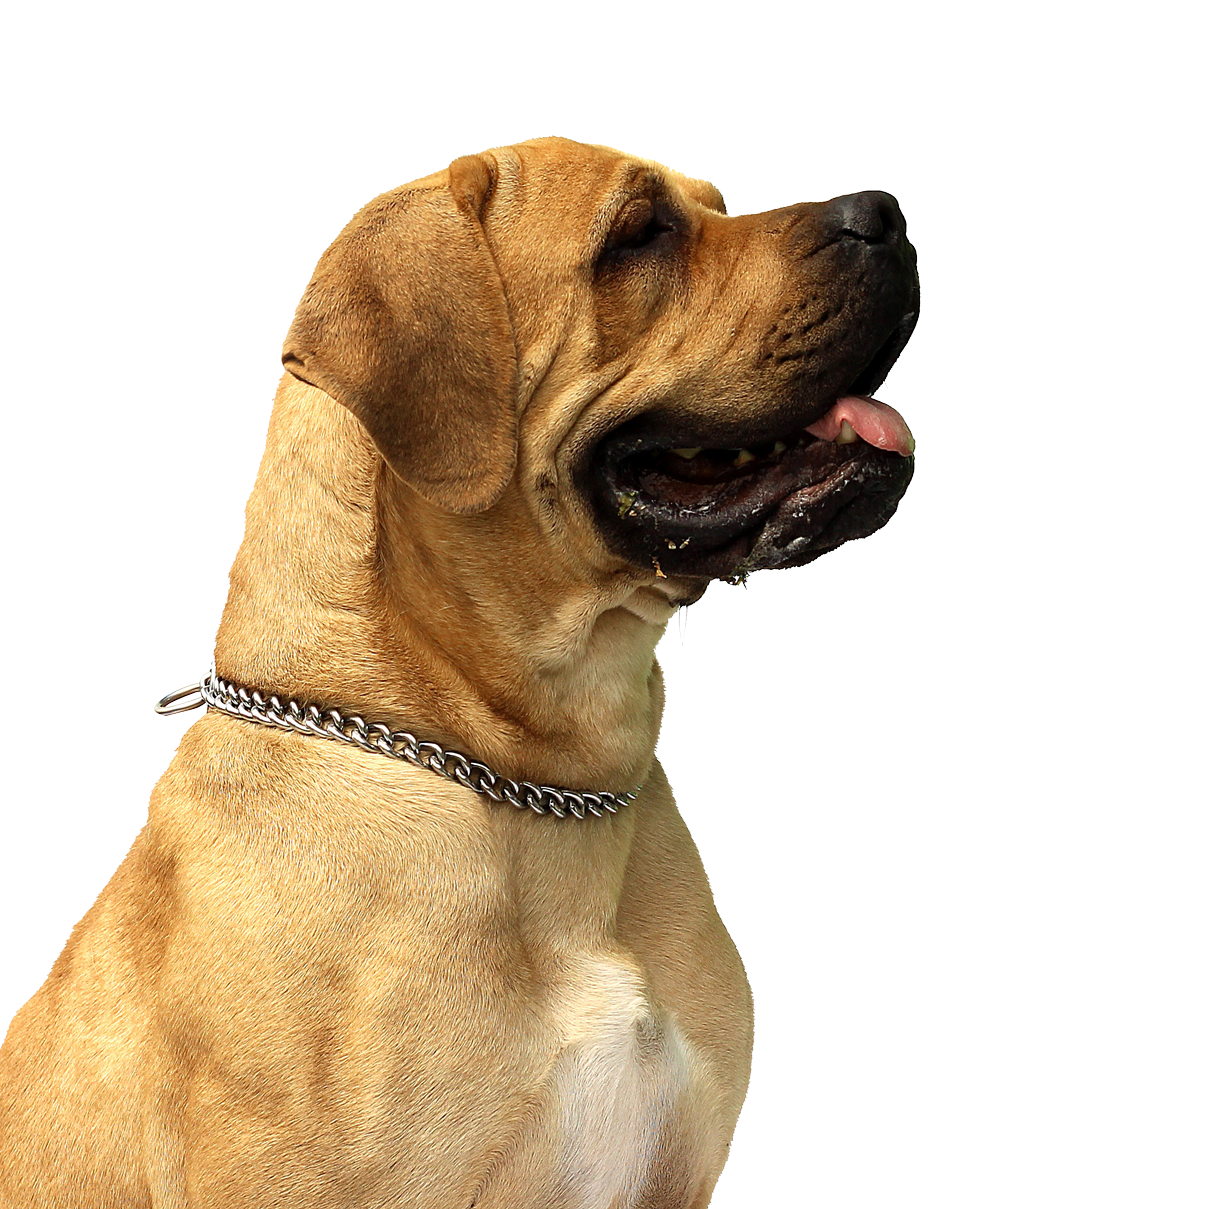 Png dog. Image dogs puppy pictures